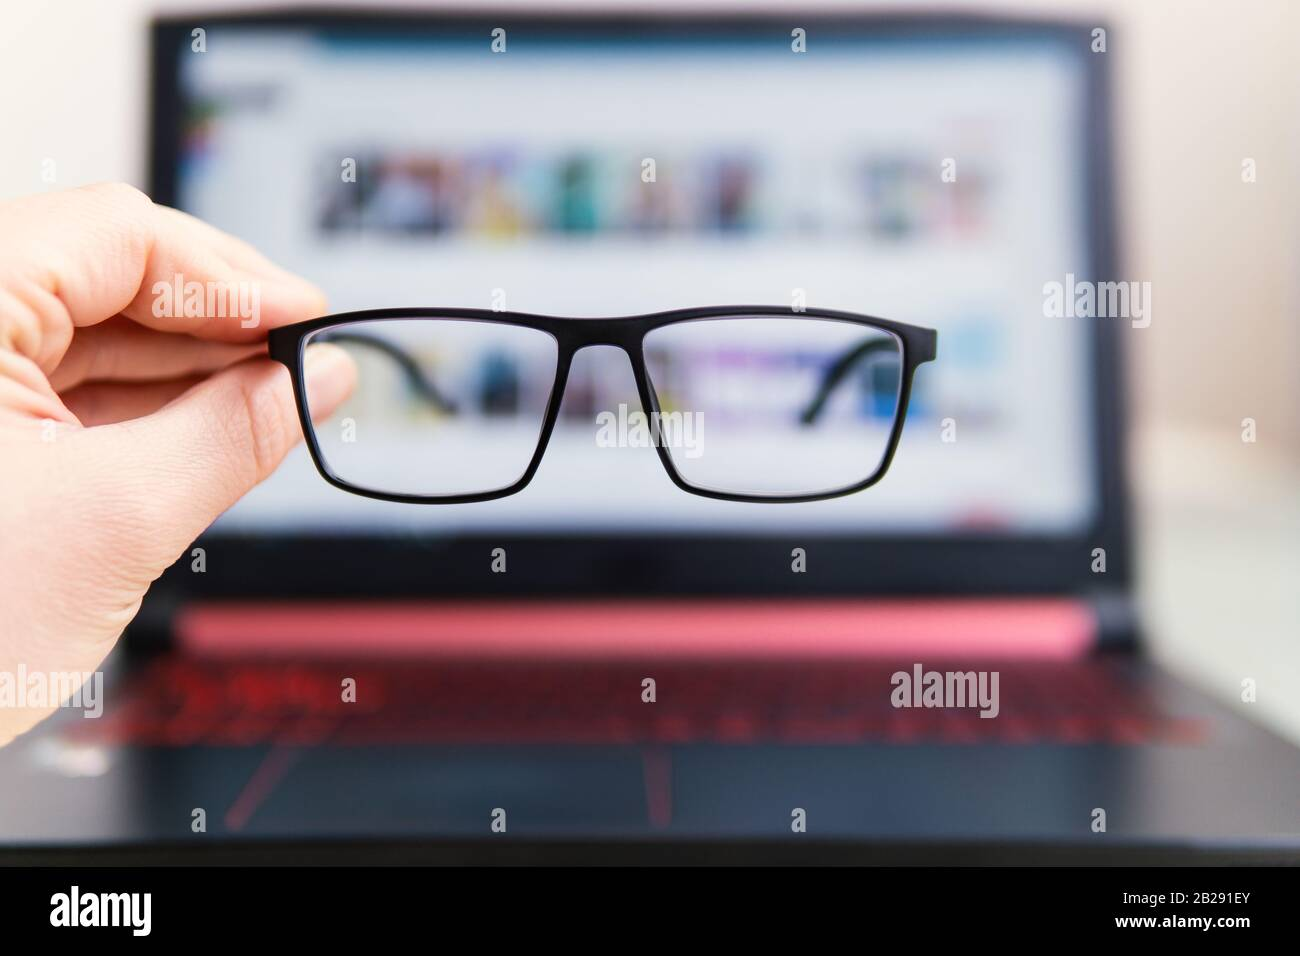 Computer Use With Glasses For Eye Health Concept Image Stock Photo Alamy